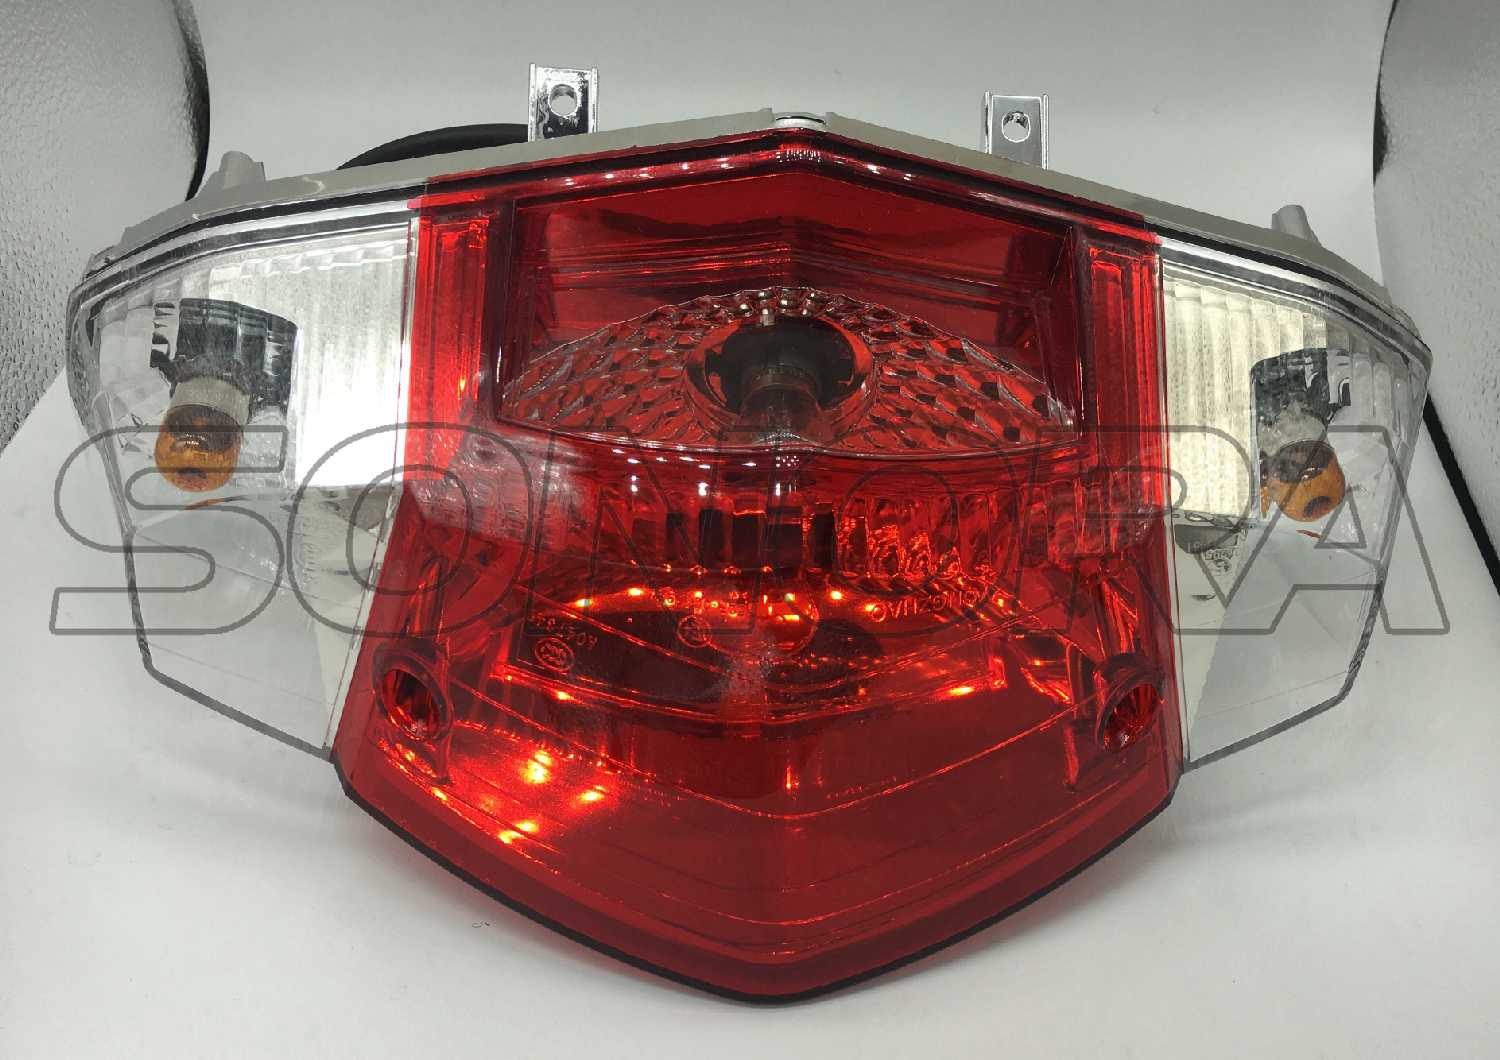 BT49QT-20cA4(5E)TAIL LIGHT